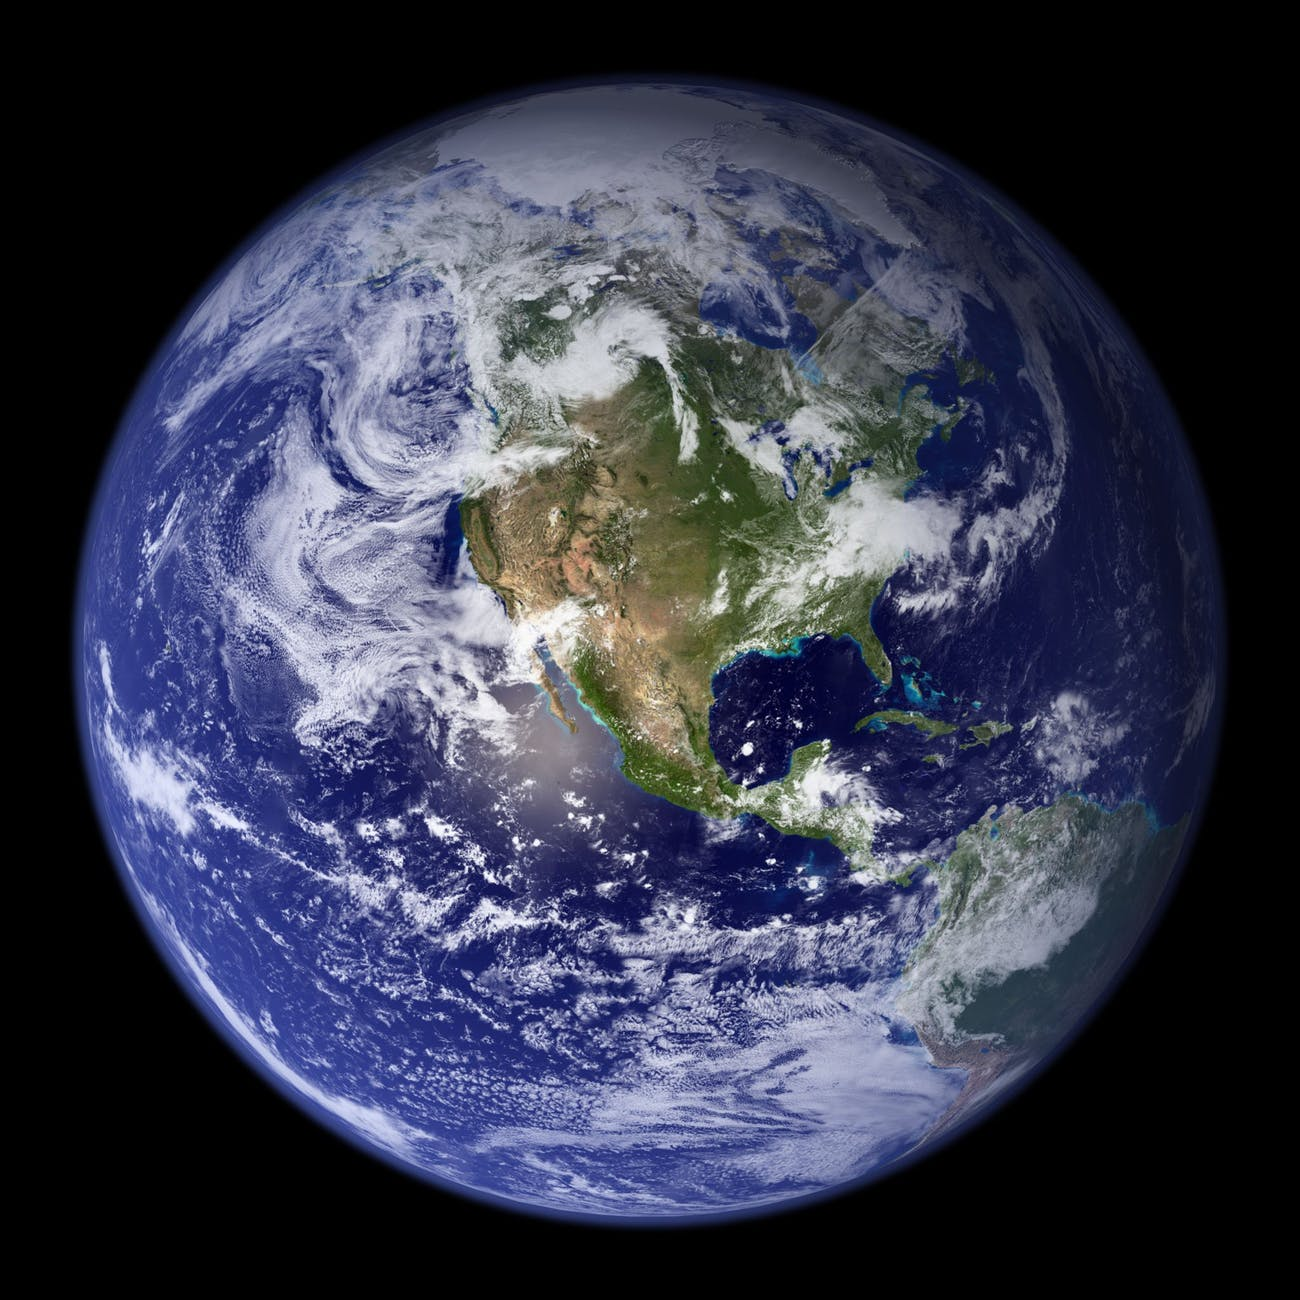 earth-blue-planet-globe-planet-87651.jpeg